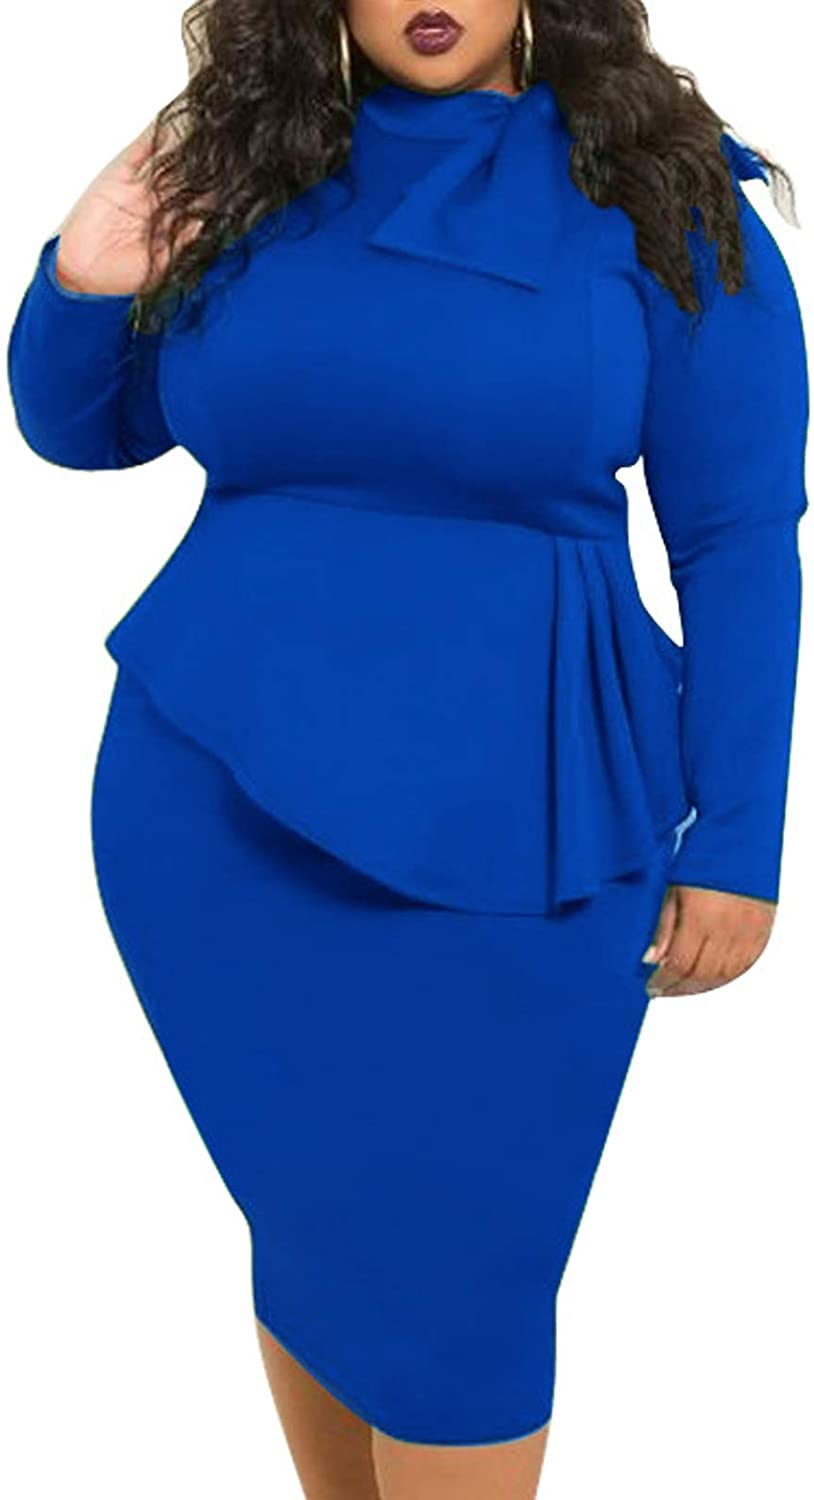 Lexiart Plus Size Dresses for Women - Stretchy Bodycon Plus Size Peplum Dress with Bowknot